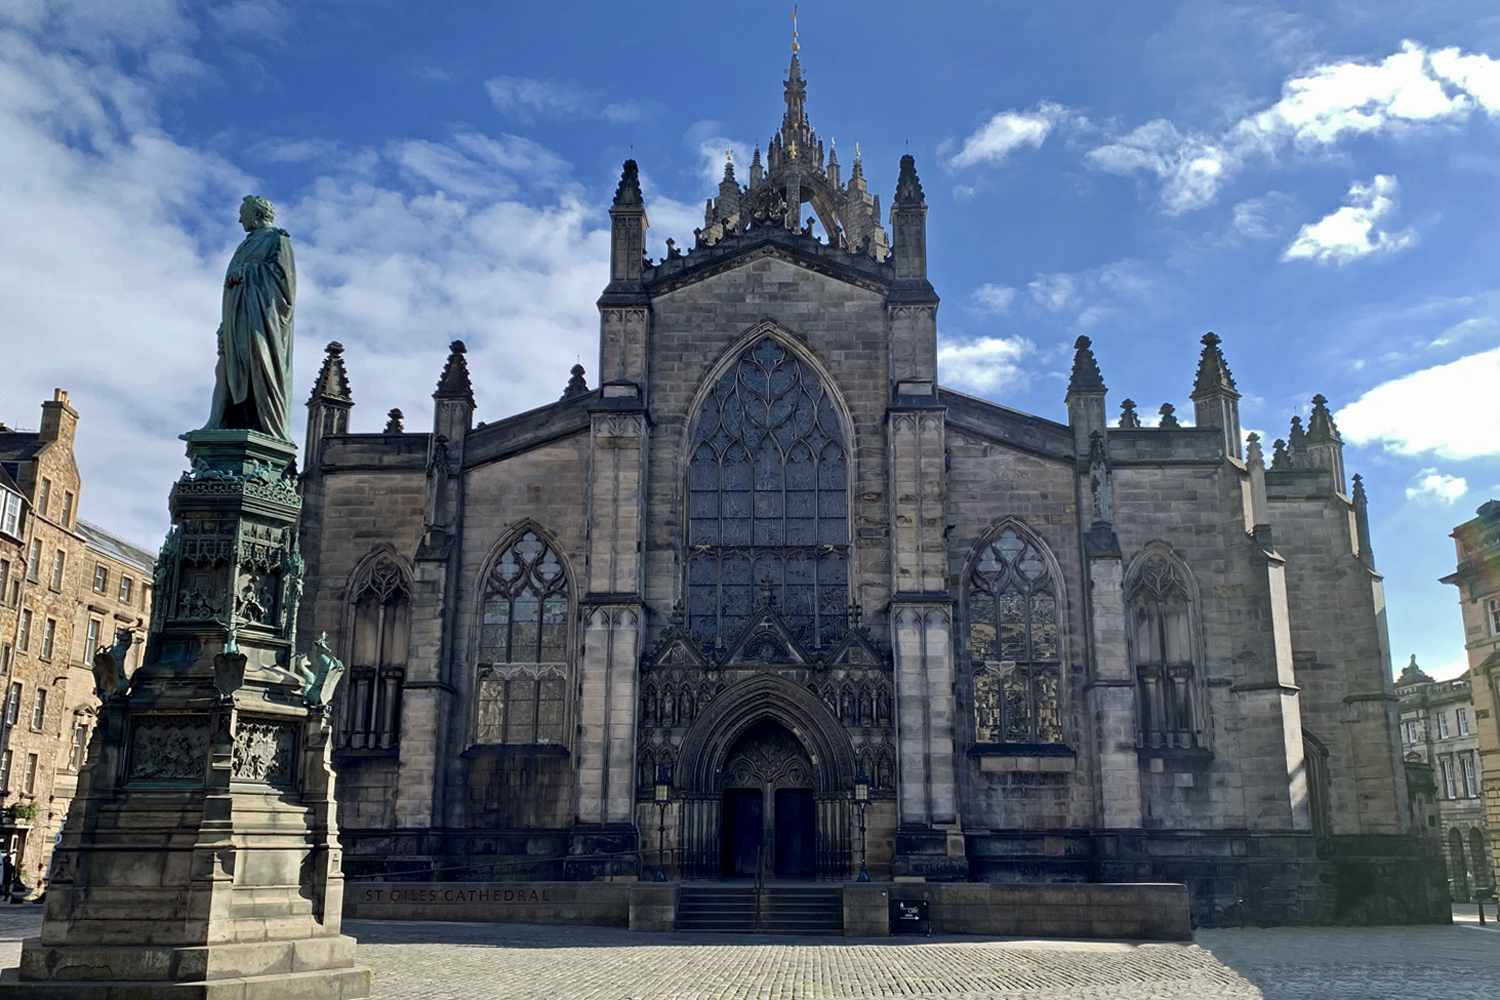 St. Giles's Cathedral in Edinburgh, with Statue of John Knox